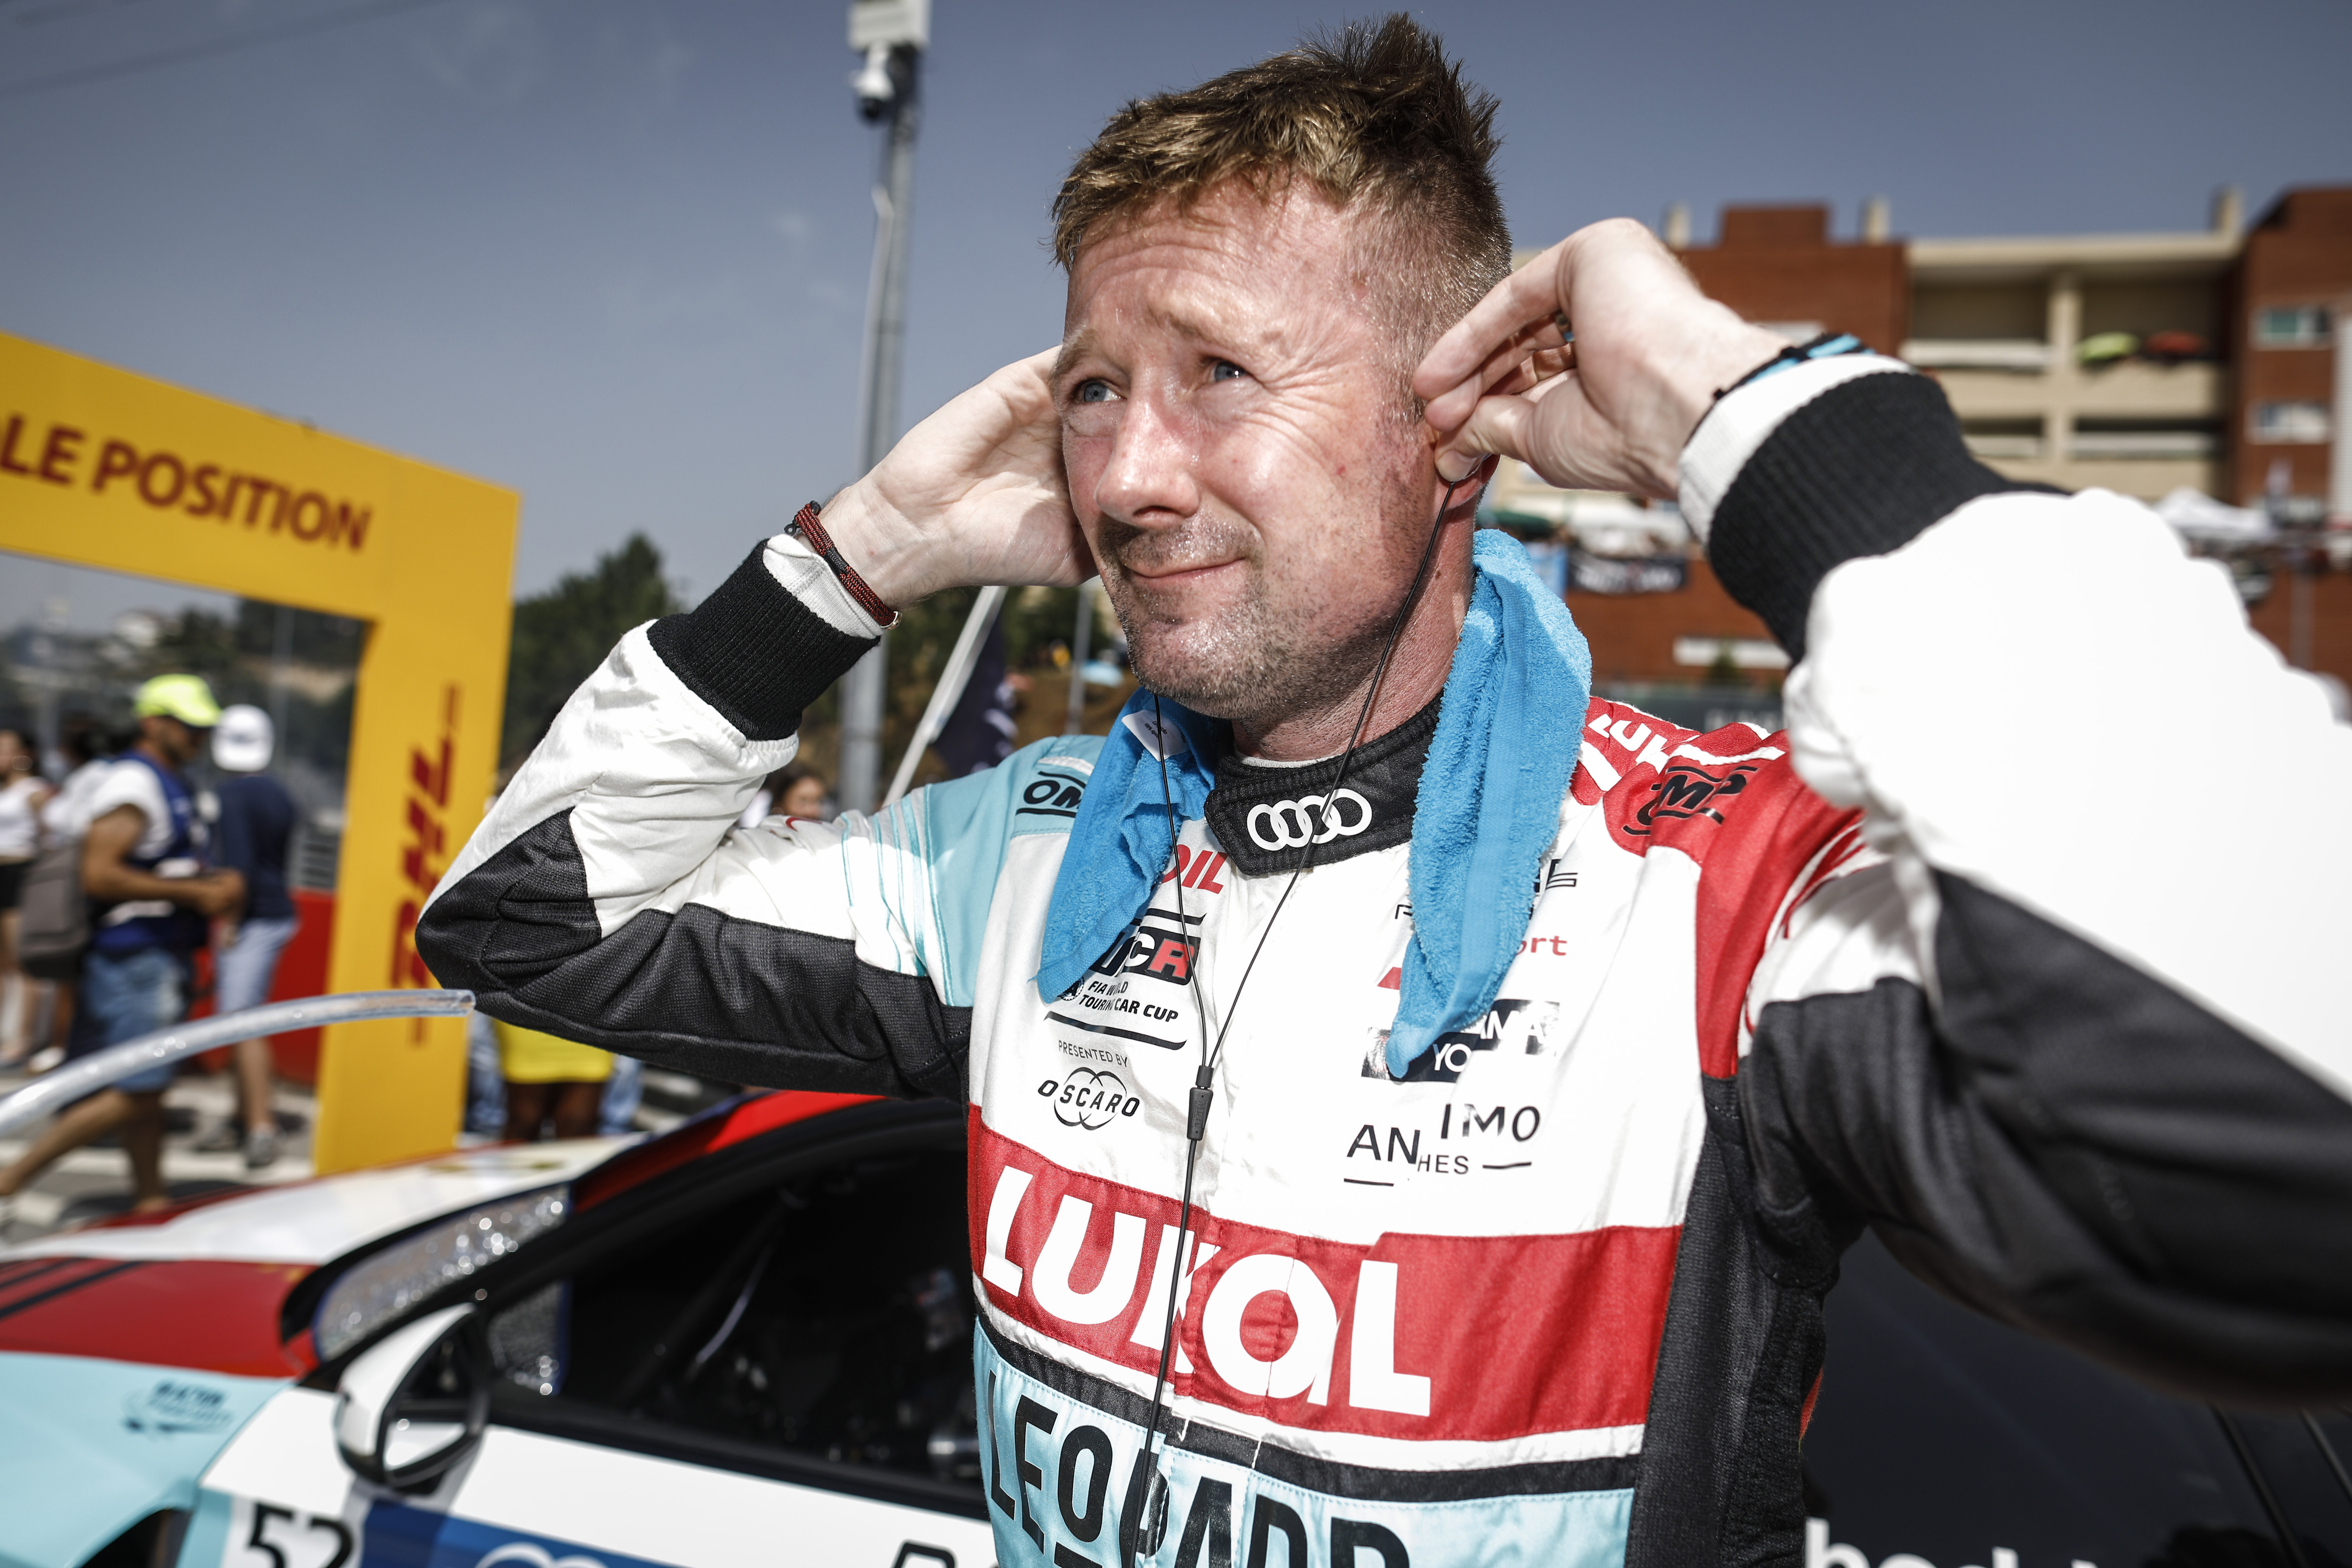 WTCR's Shedden moves on from chicane penalty